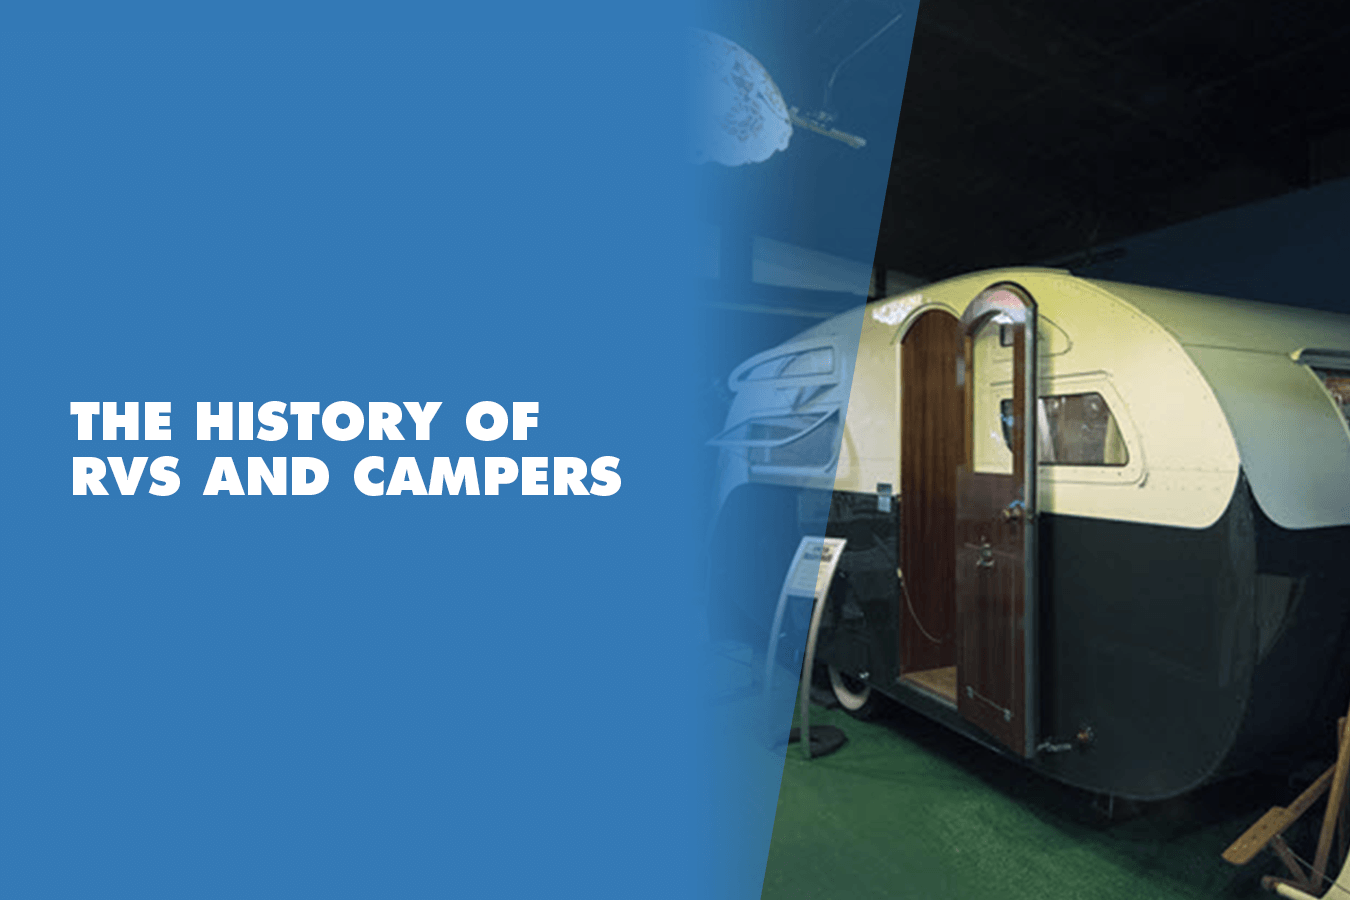 the history of campers and rvs